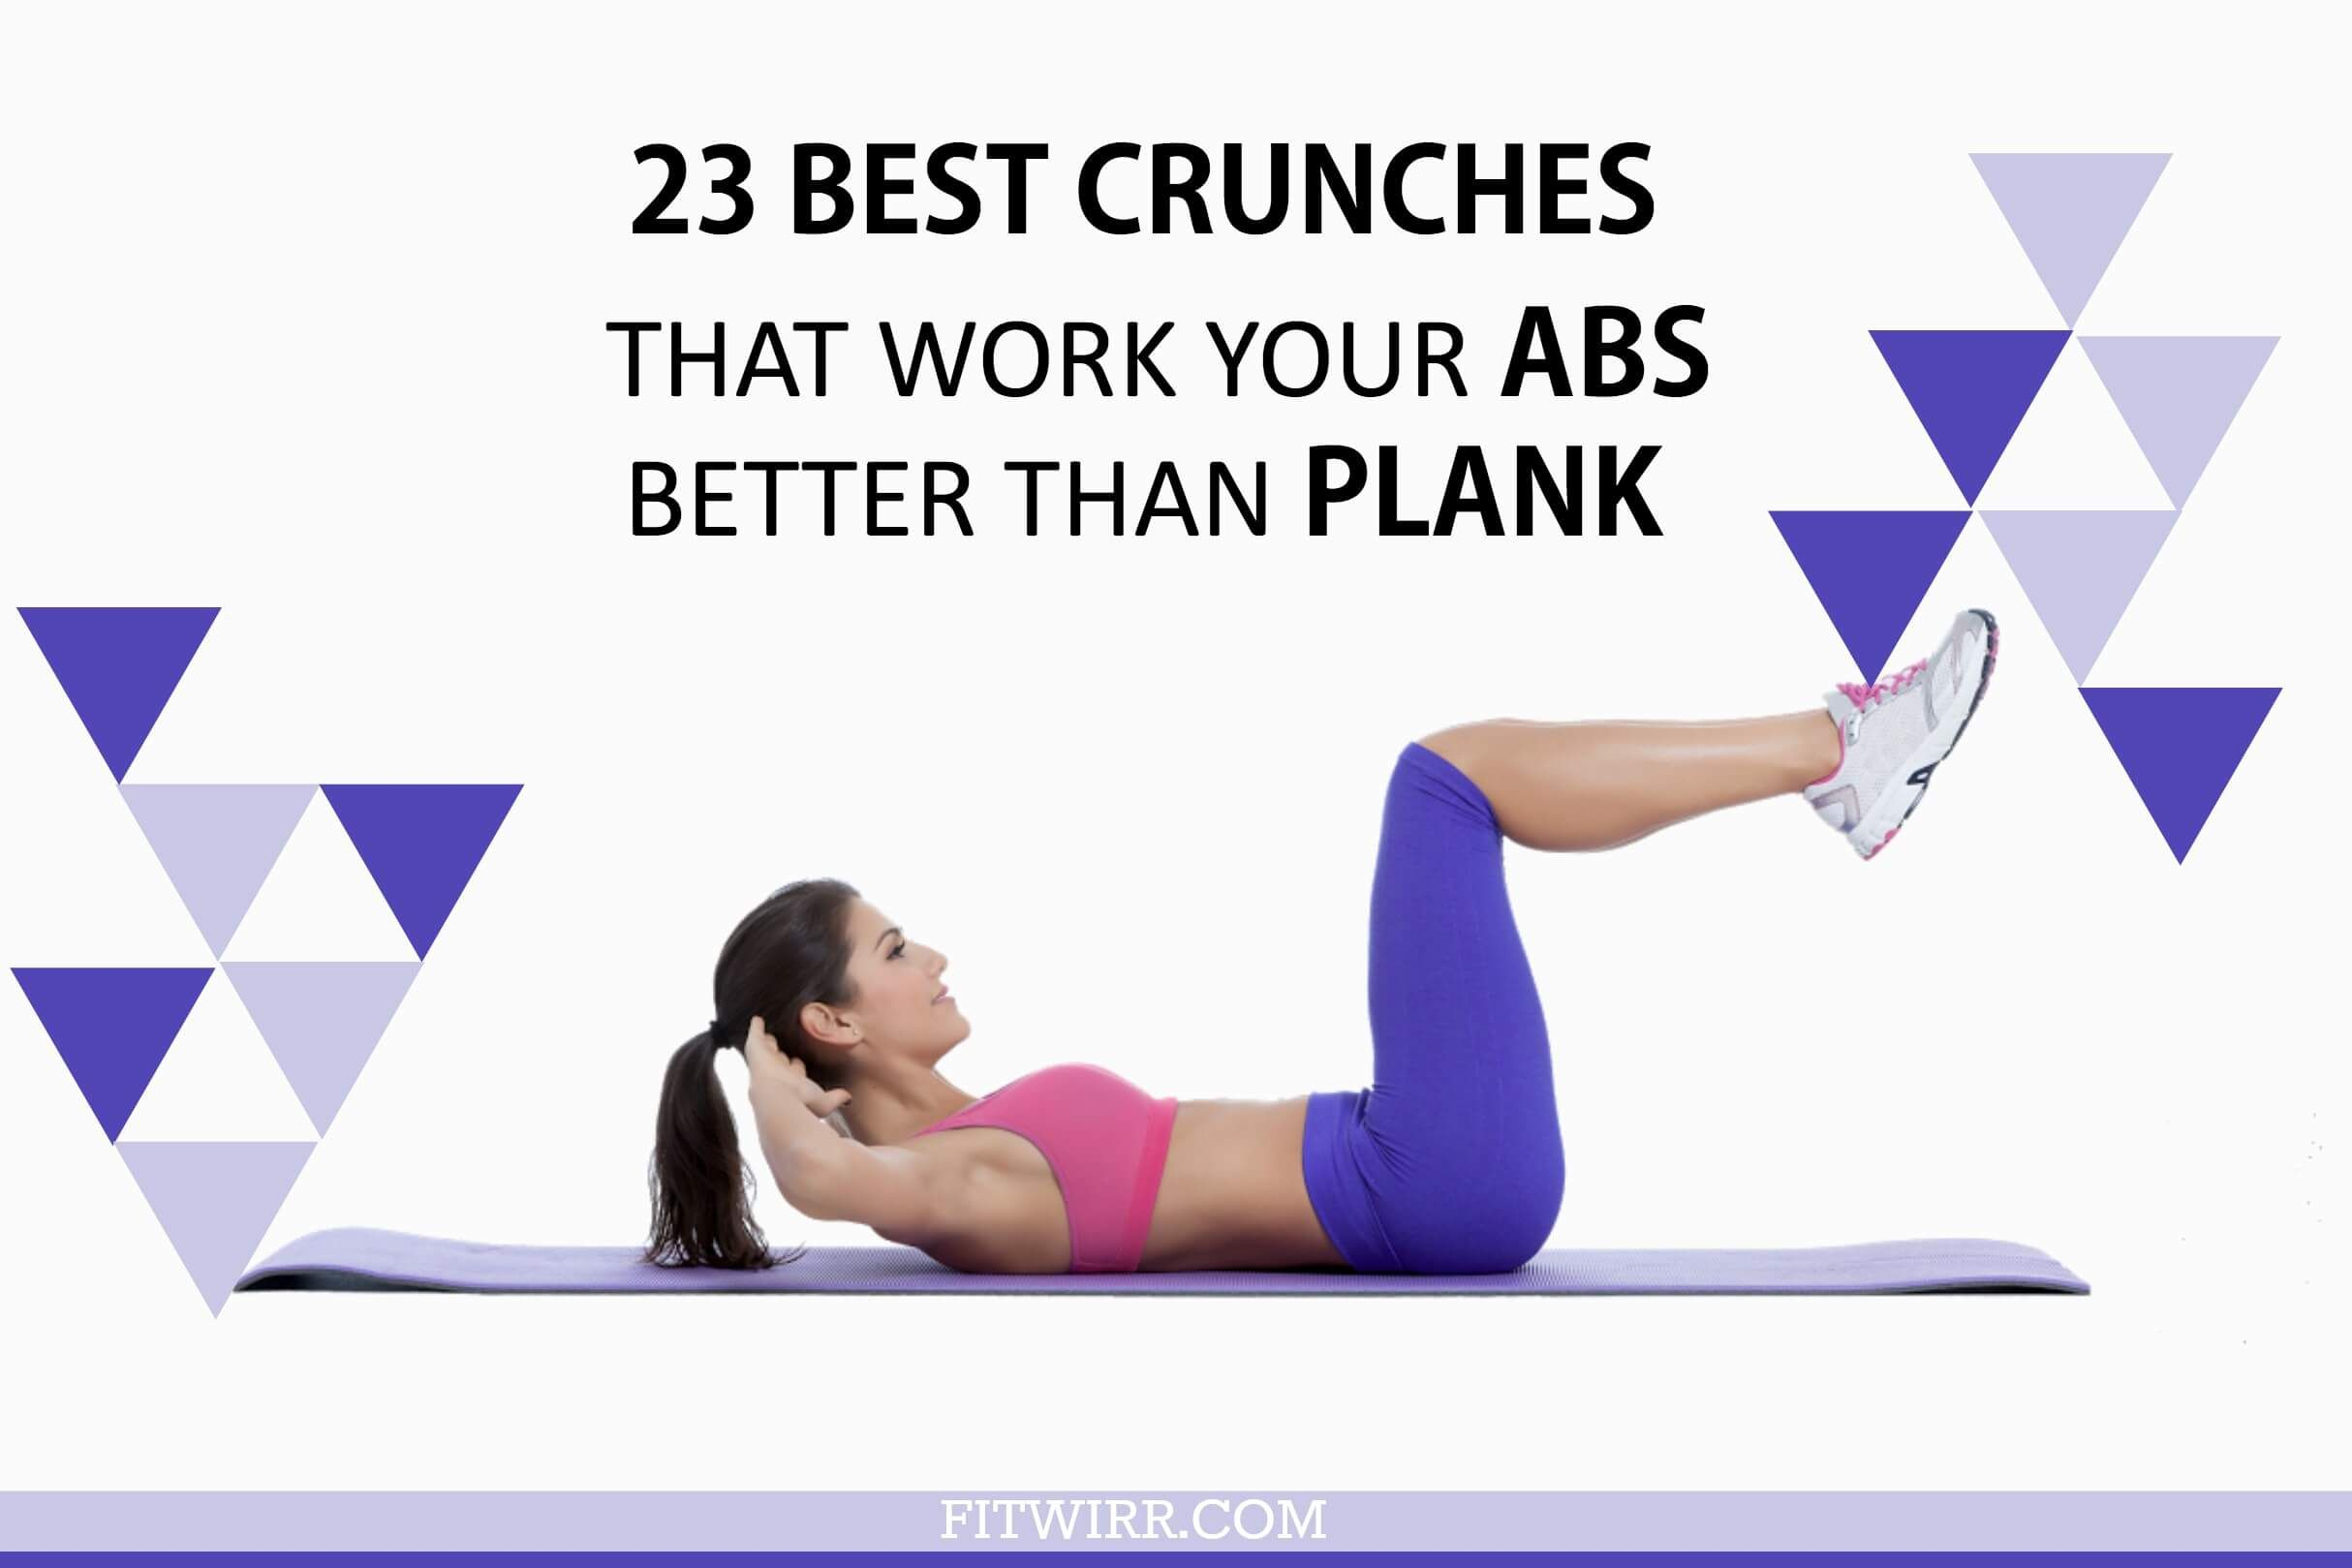 23 Best #Crunches That Work Your #Abs Harder than #Plank